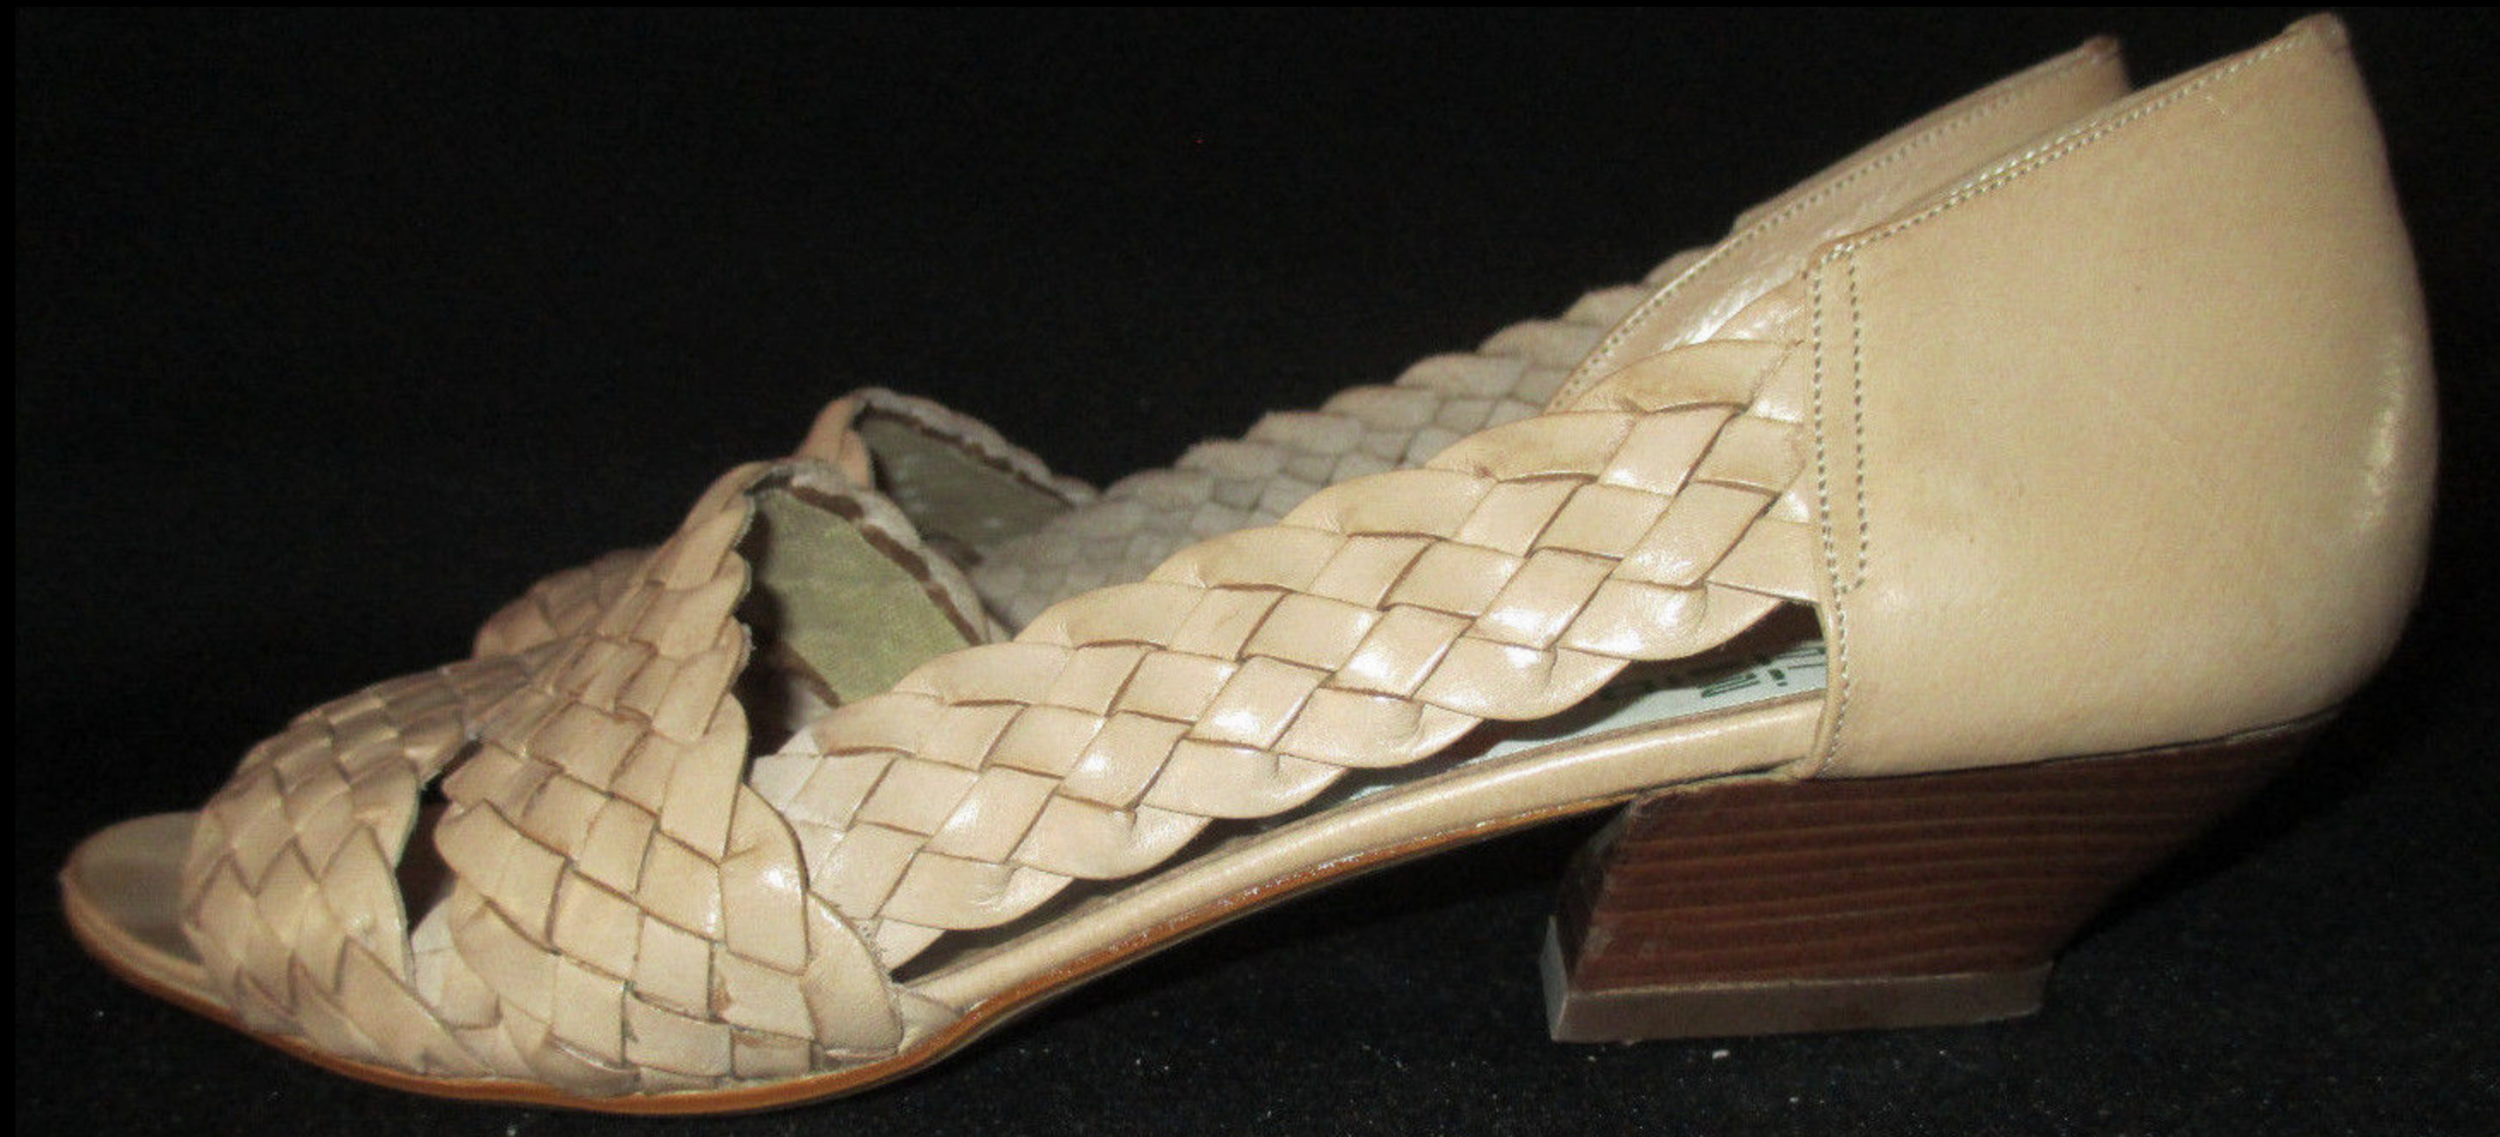 Vintage woven - OK, these are nothing like the MNZ sandals, but I like them anyway! I love woven or braided texture, and they are the right color and size. The heel is a little victorian-esque but I can see beyond that.